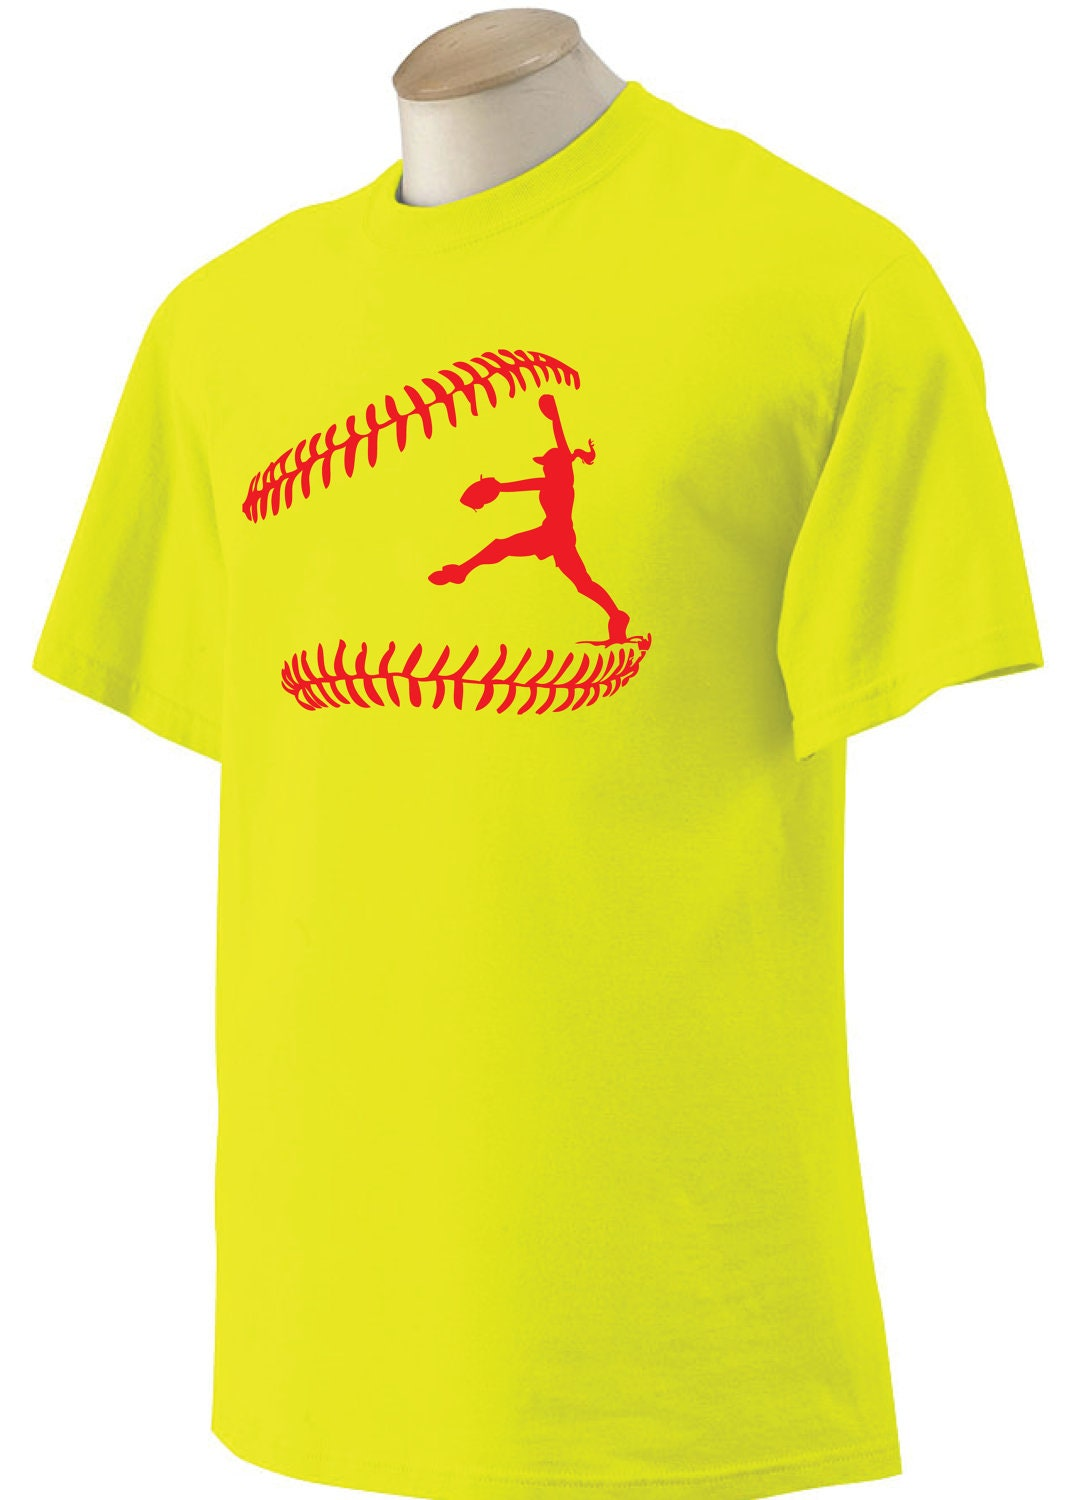 men 39 s softball jersey designs - Softball Jersey Design Ideas